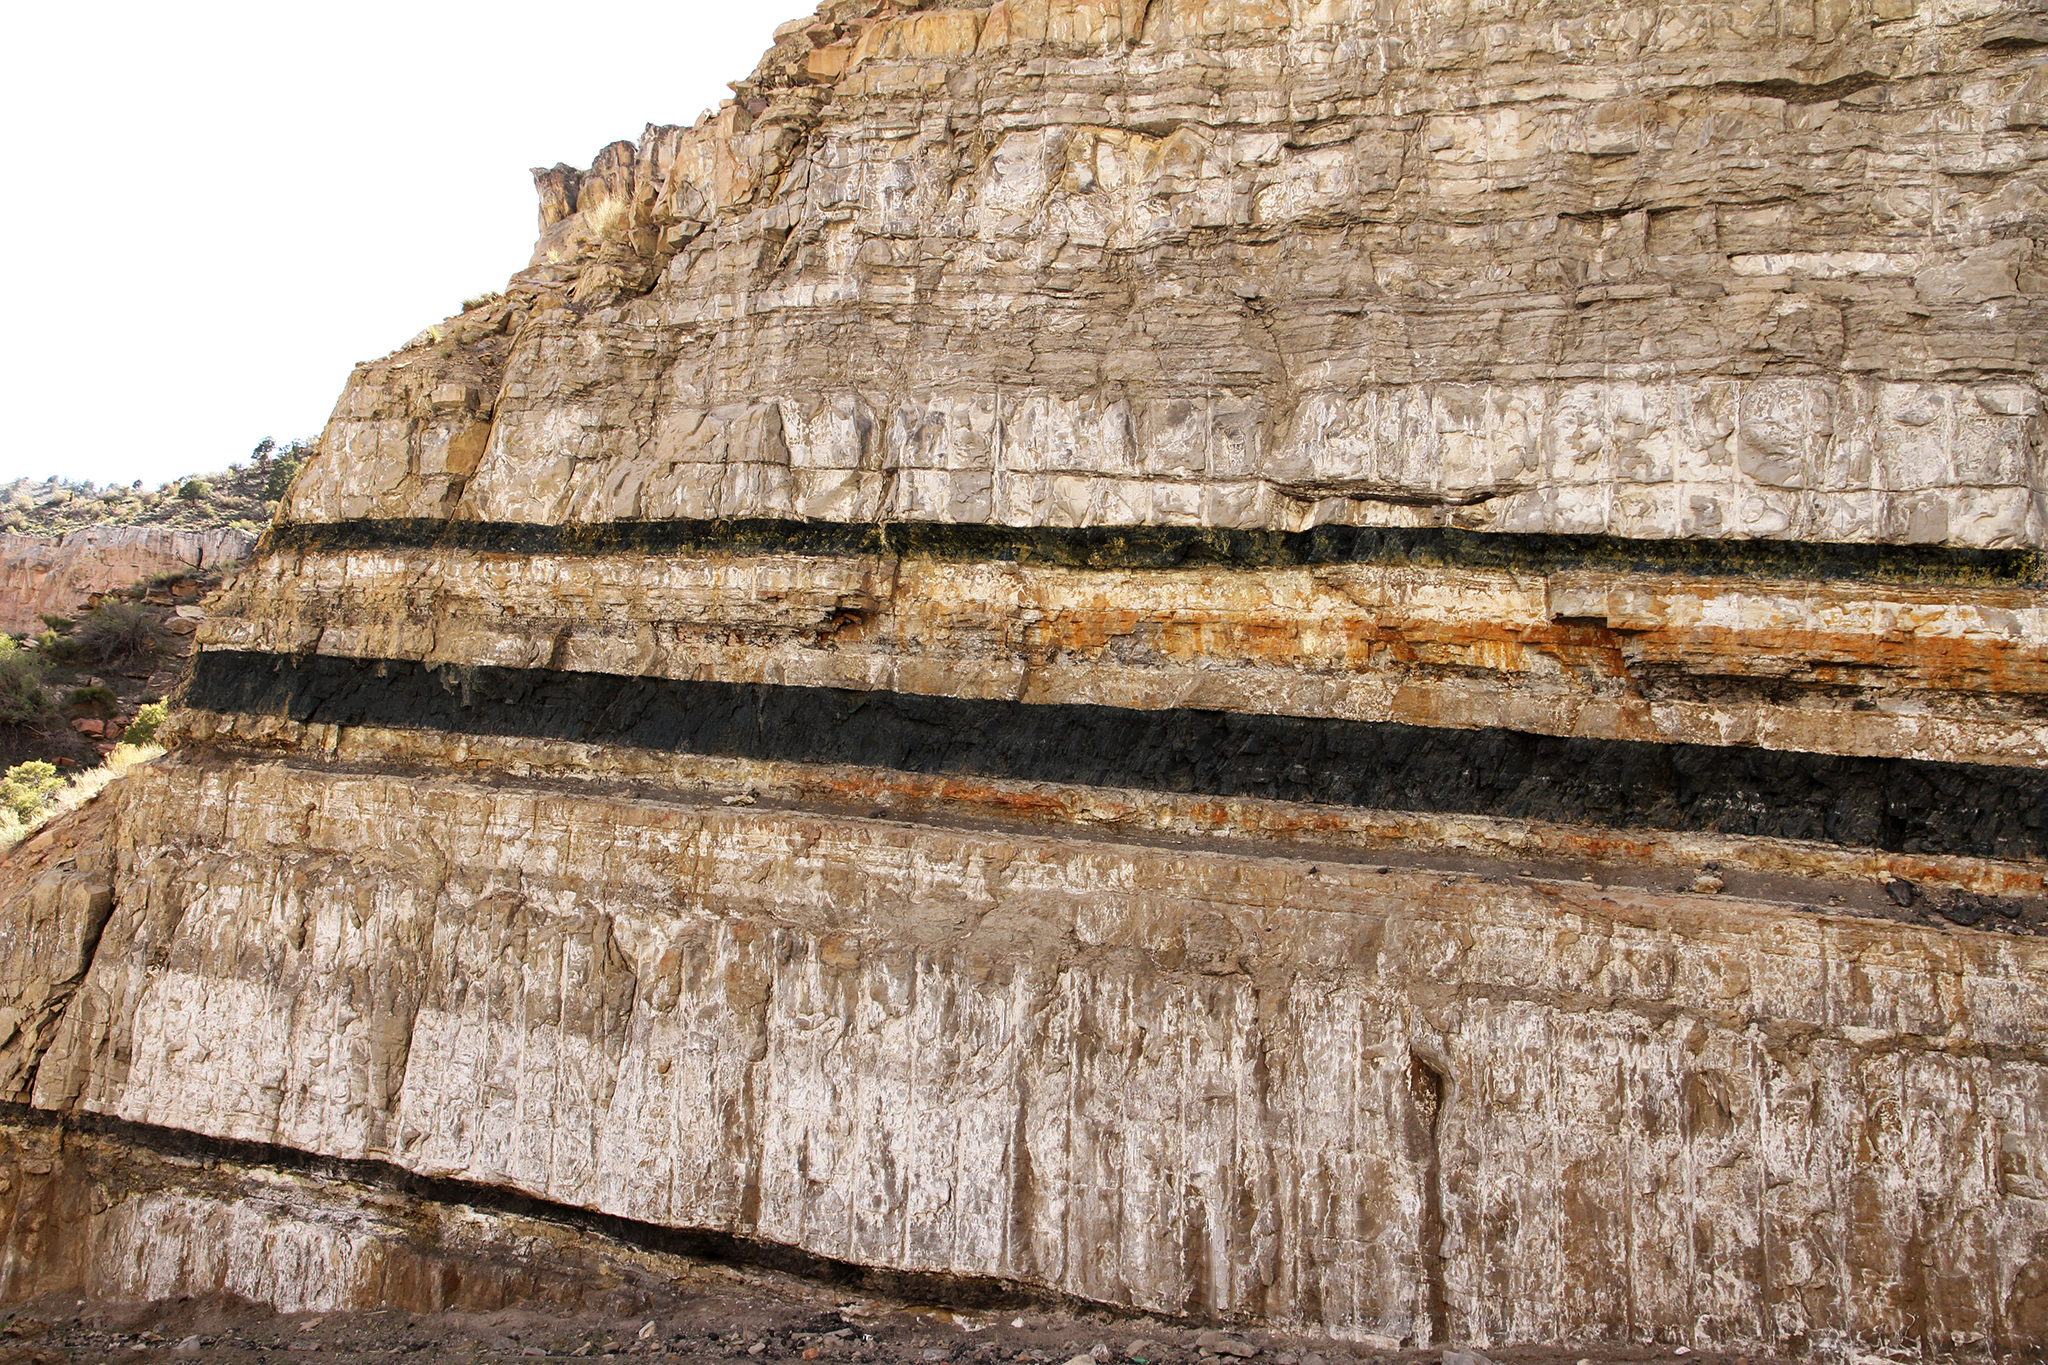 Knife-edge flat gap parallel strata including coal seams in Carbon, Utah. Royce Bair, Used by permission.